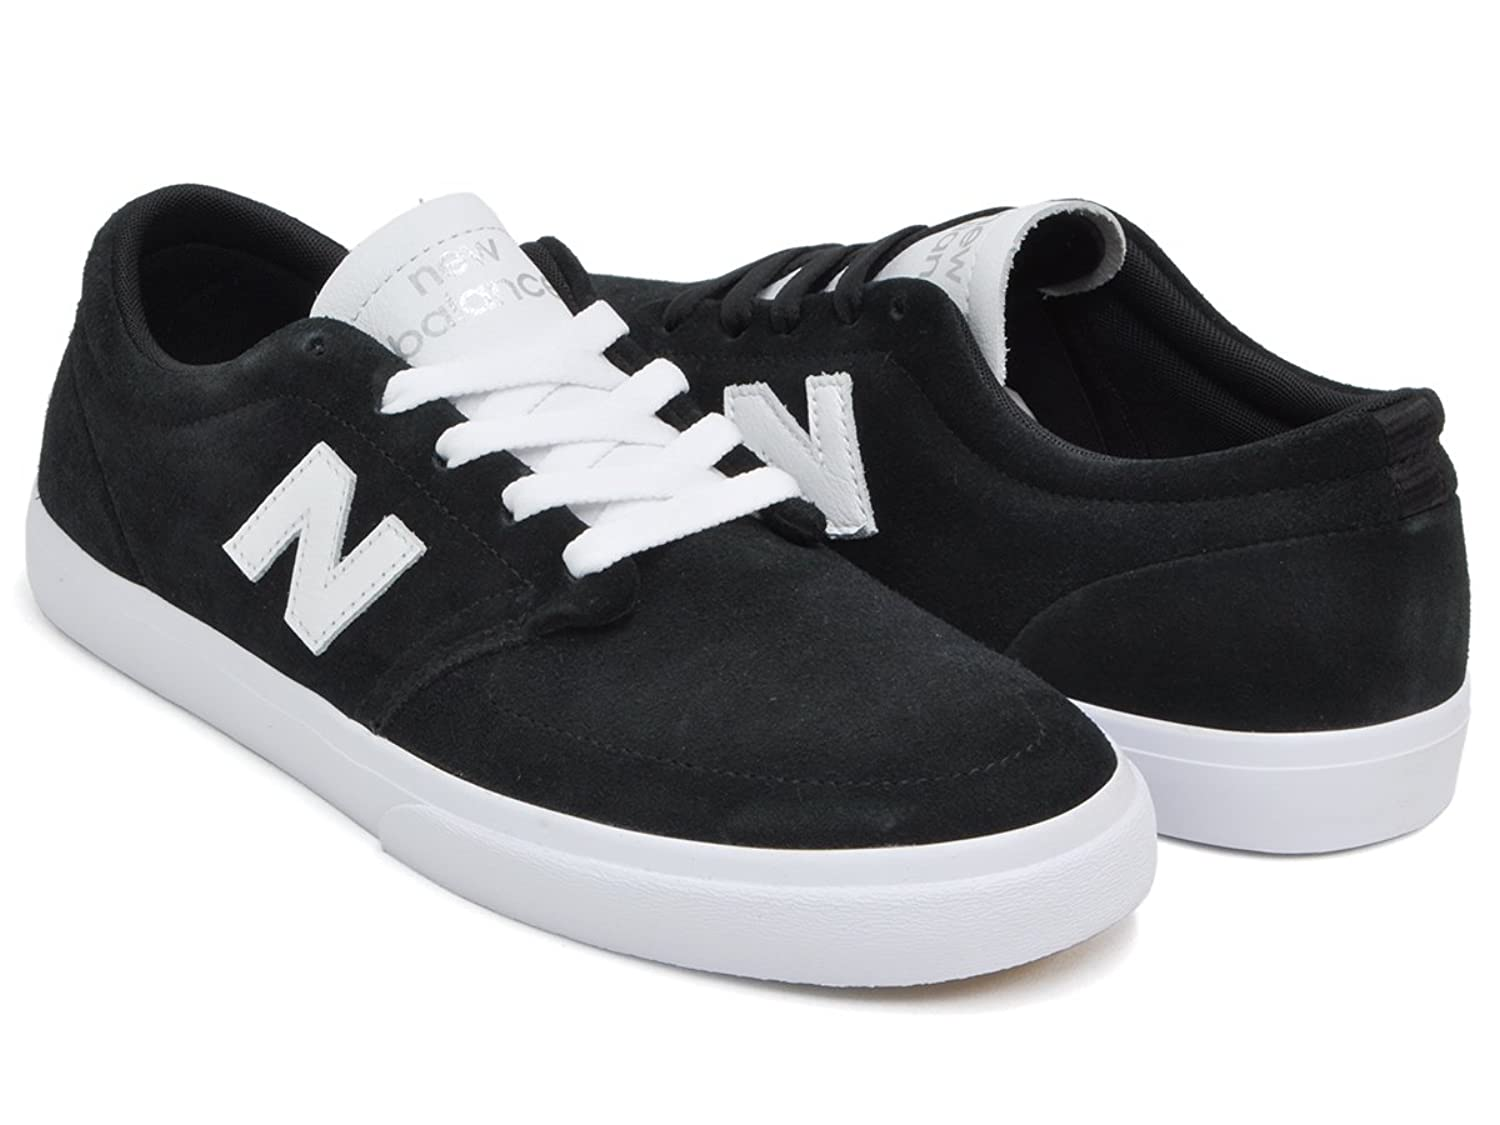 (ニューバランス) new balance NUMERIC NM345 GBW [ヌメリック 345] BLACK / WHITE nm345gbw [並行輸入品] B07C4KRW6X 28.0(10)US